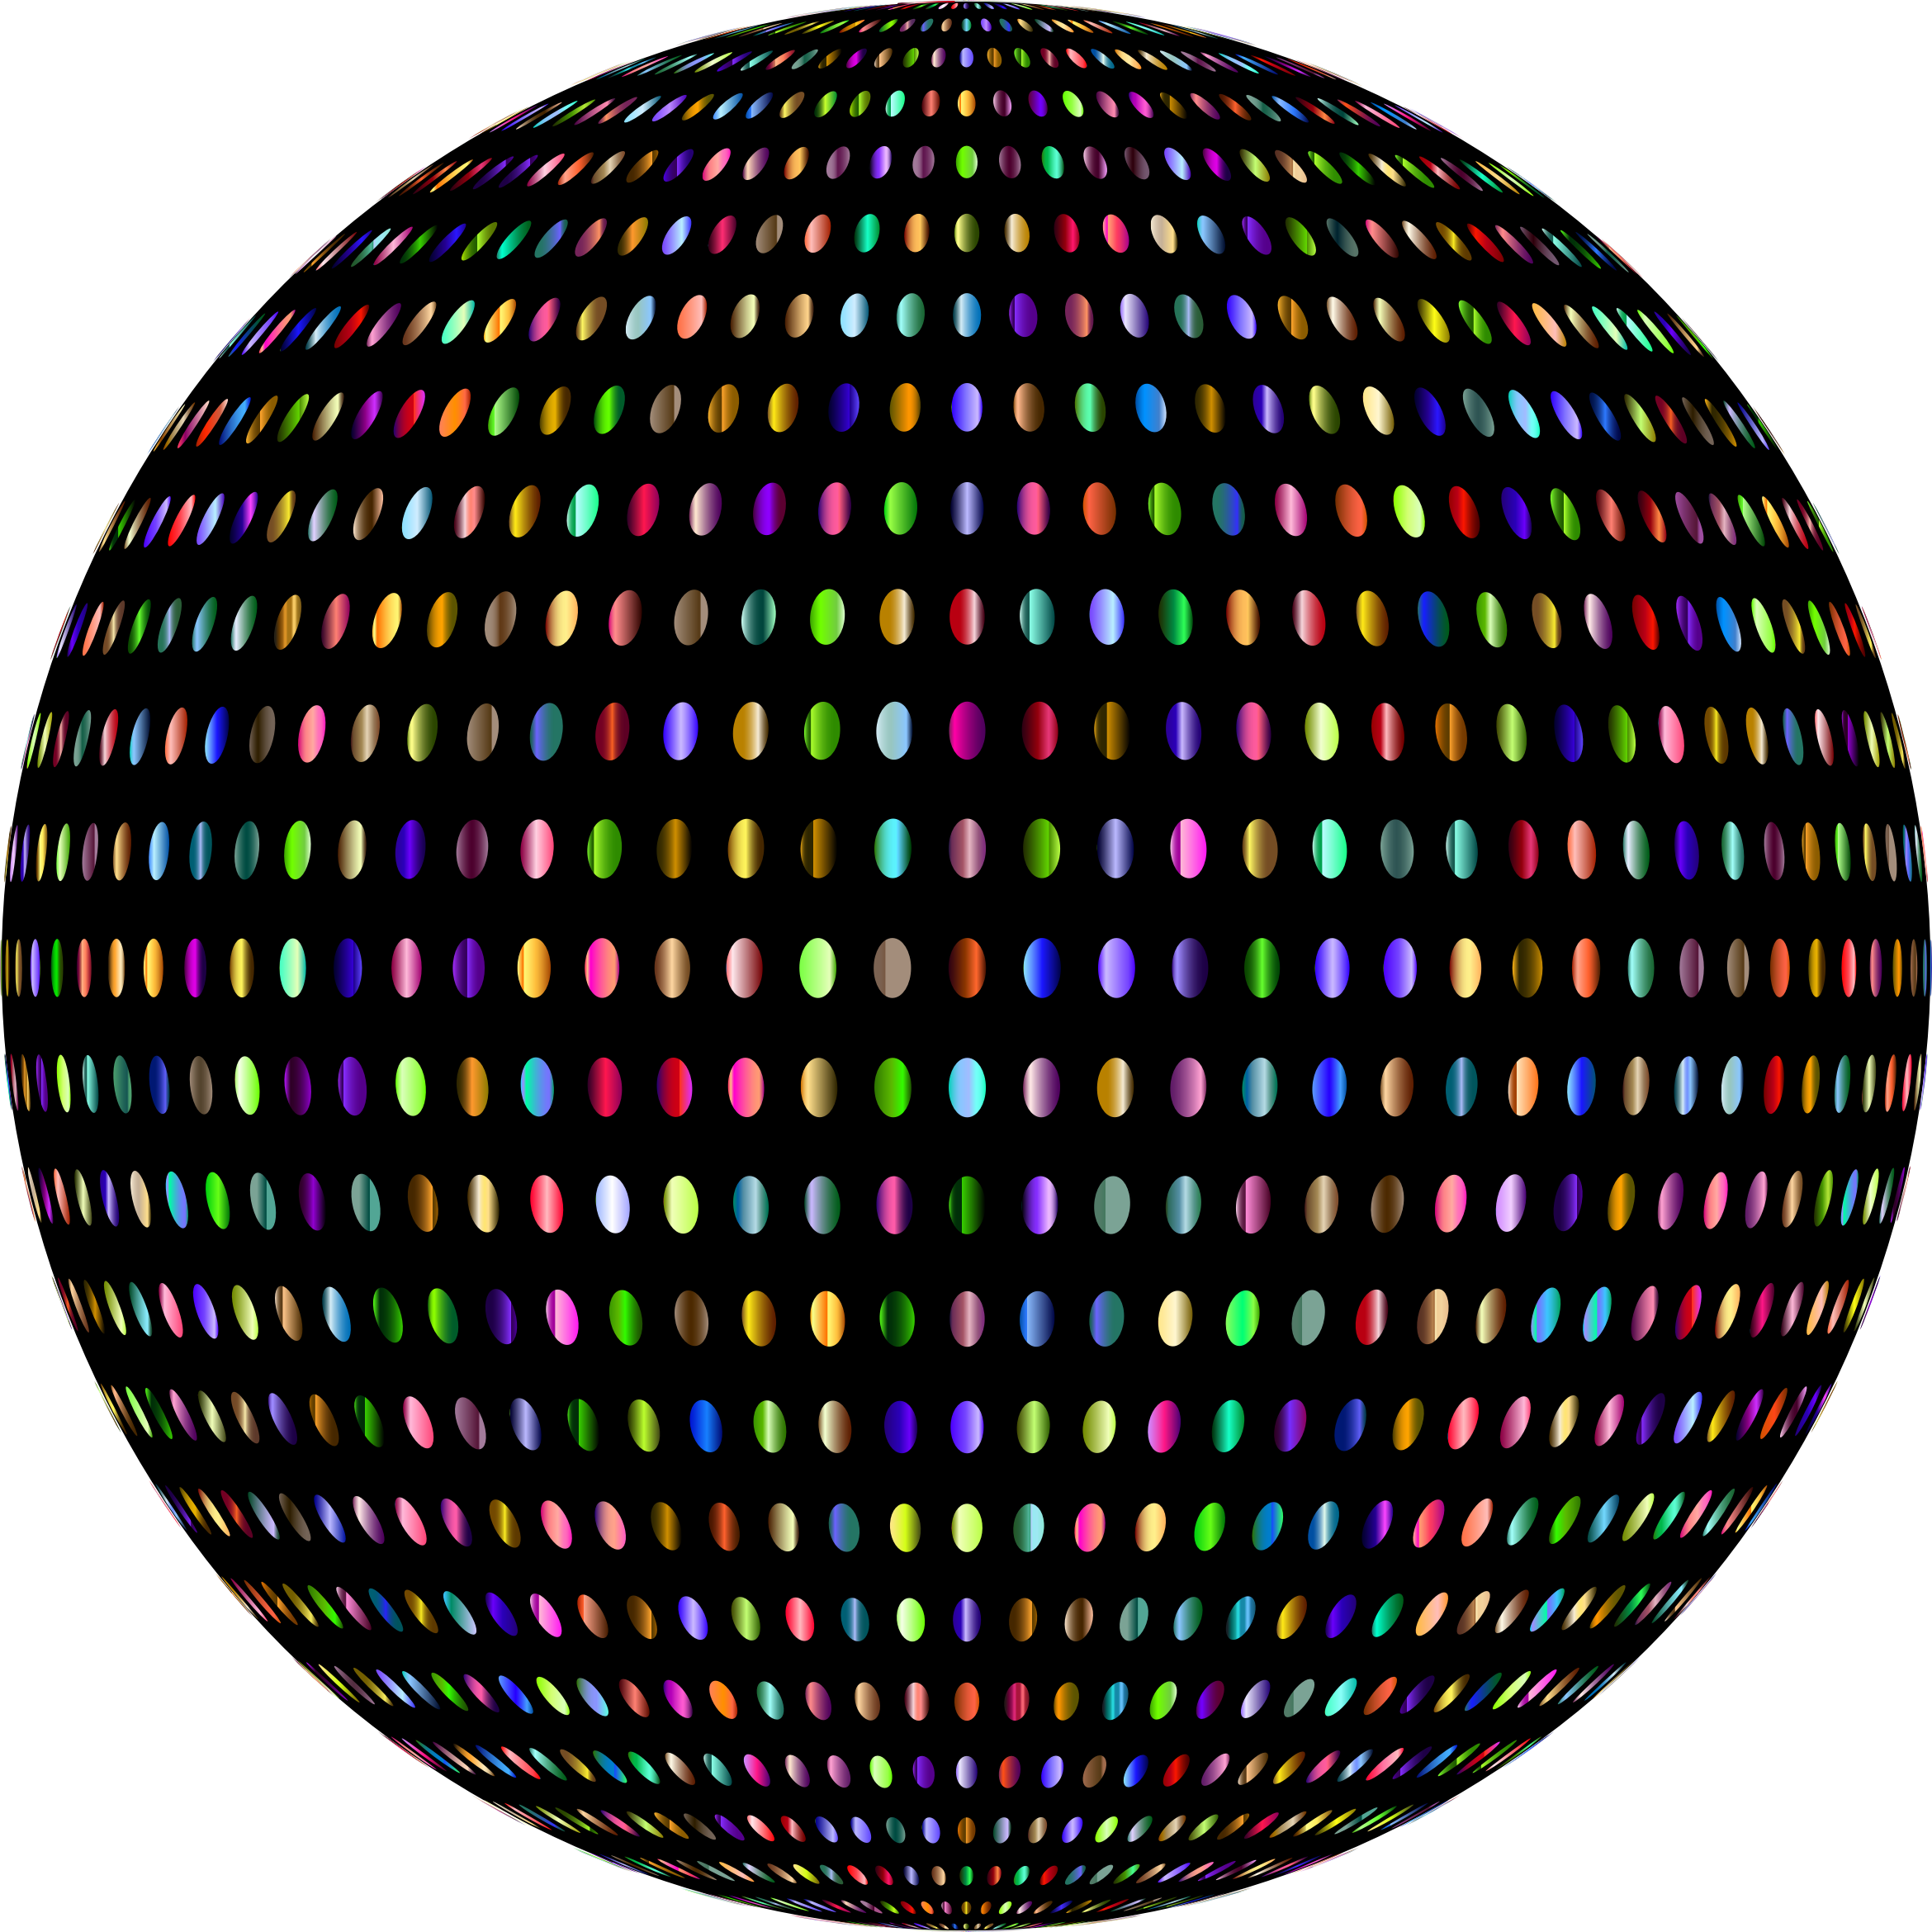 Prismatic Polka Dots Sphere by GDJ